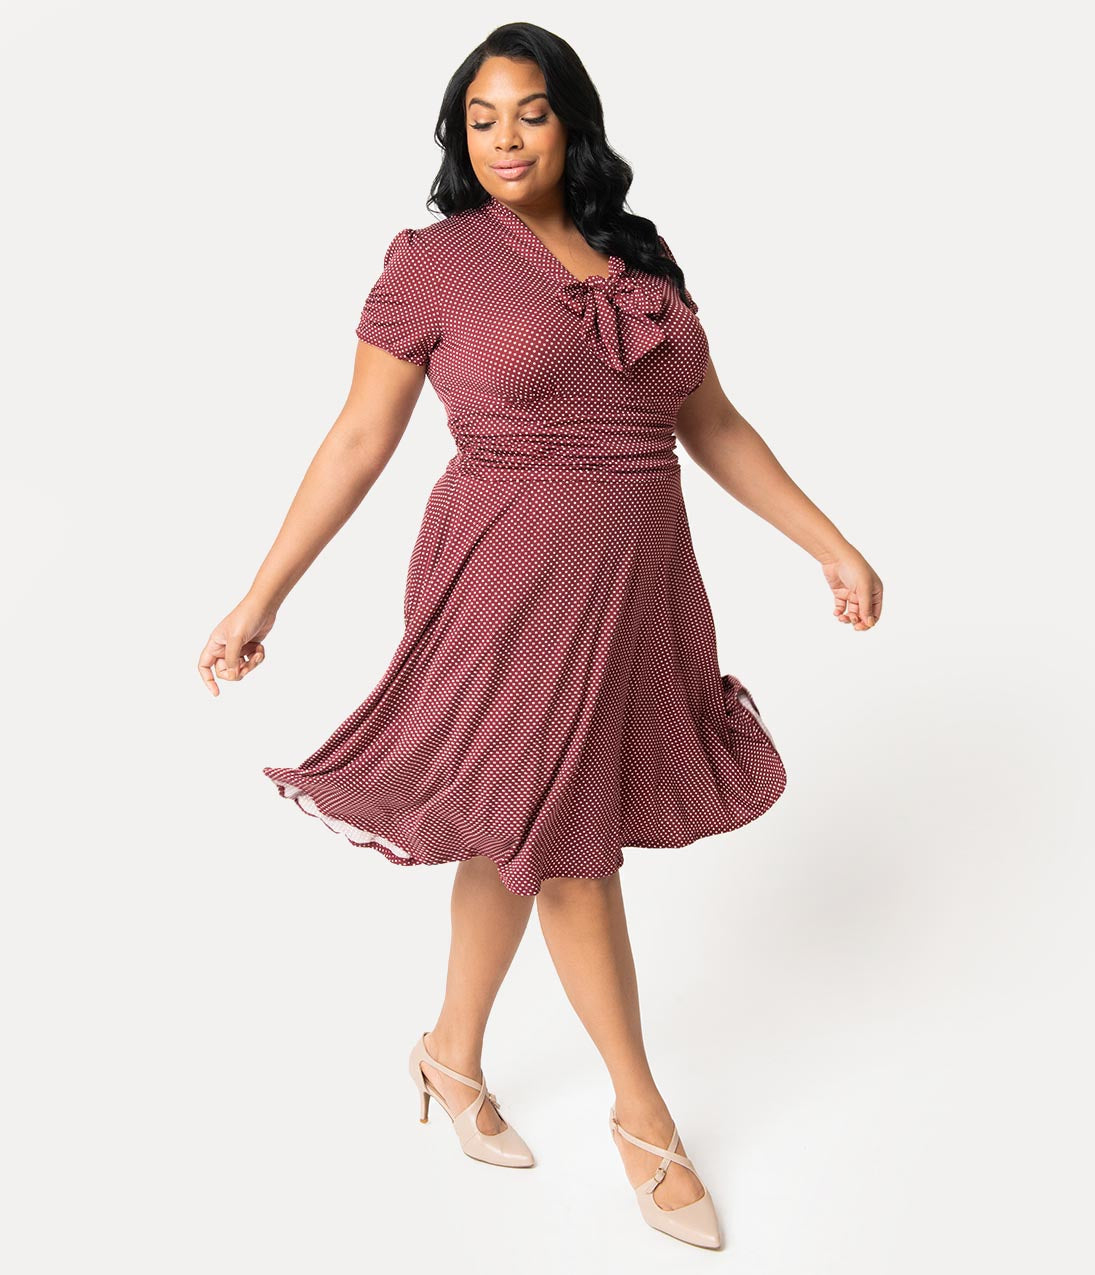 1940s Plus Size Fashion: Style Advice from 1940s to Today Folter Plus Size 1940S Style Burgundy  White Pin Dot Neck Tie Swing Dress $72.00 AT vintagedancer.com